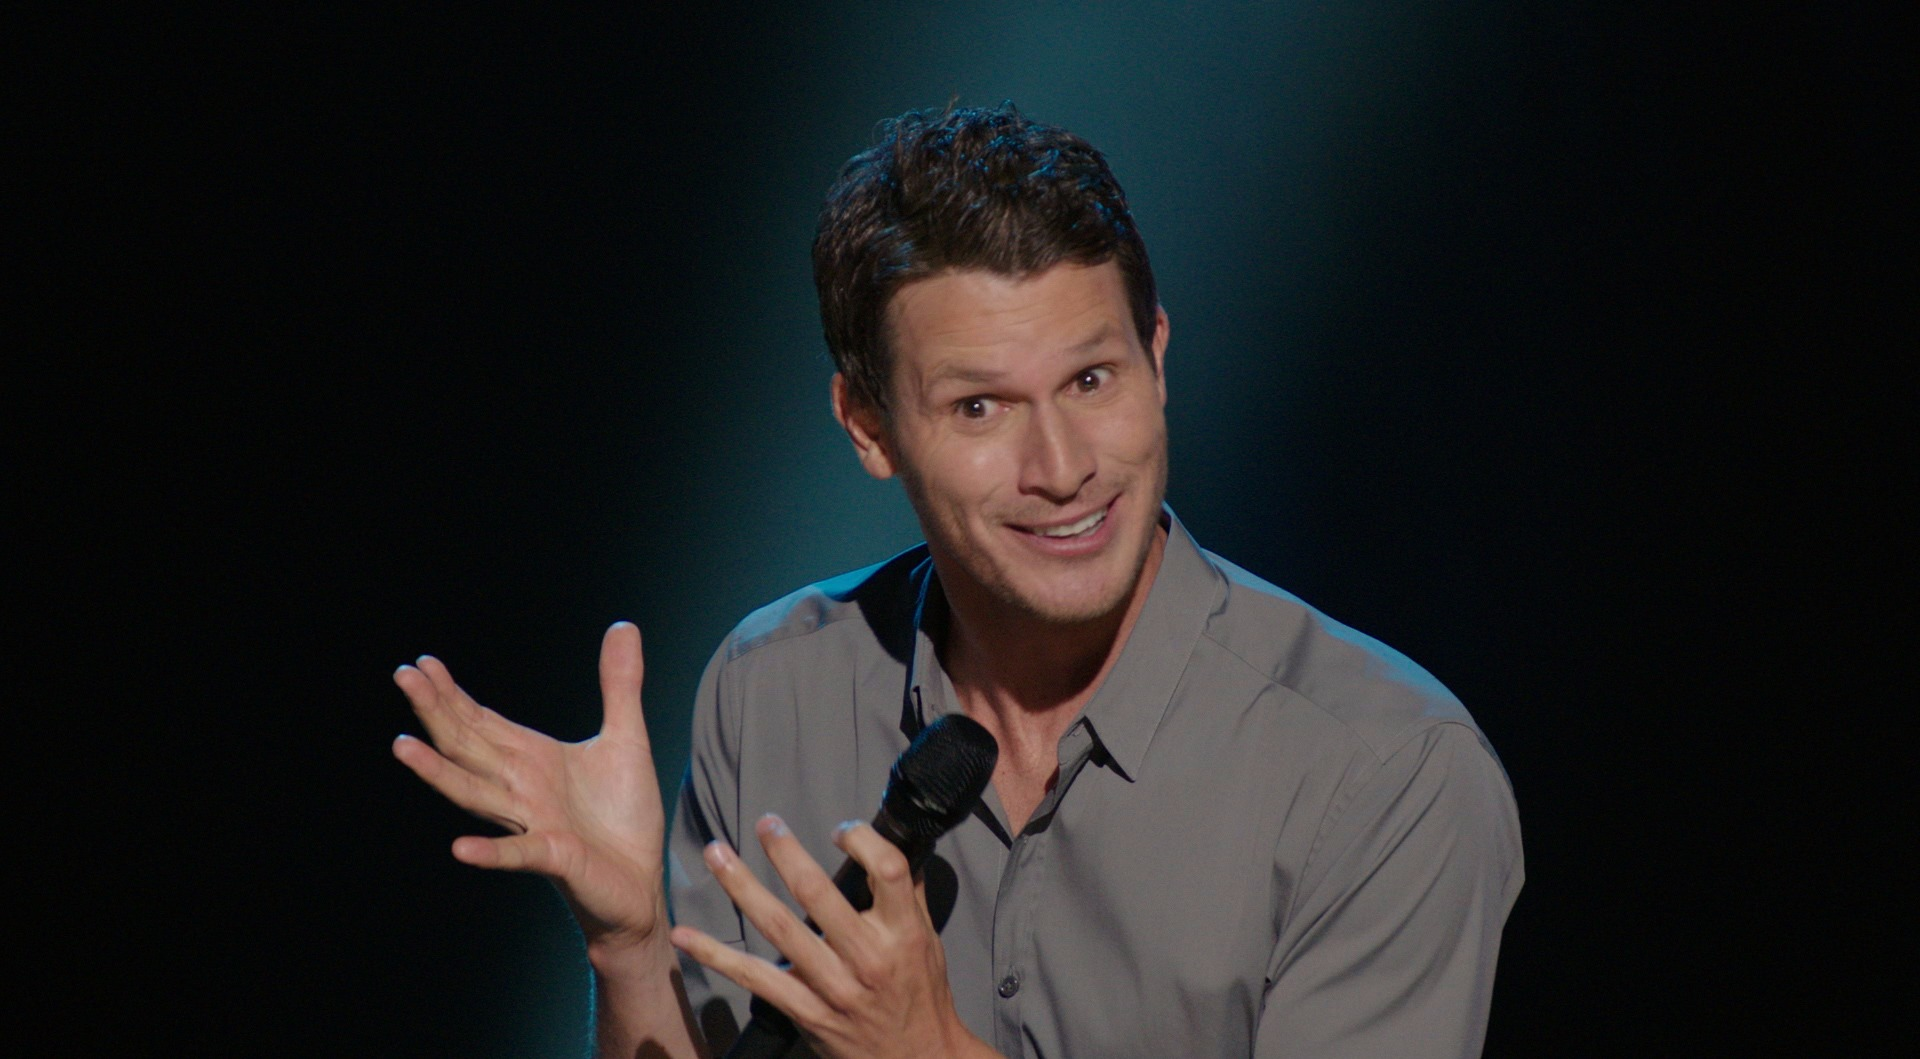 Daniel Tosh giving a funny expression with a mike on his hand as he is performing on his show